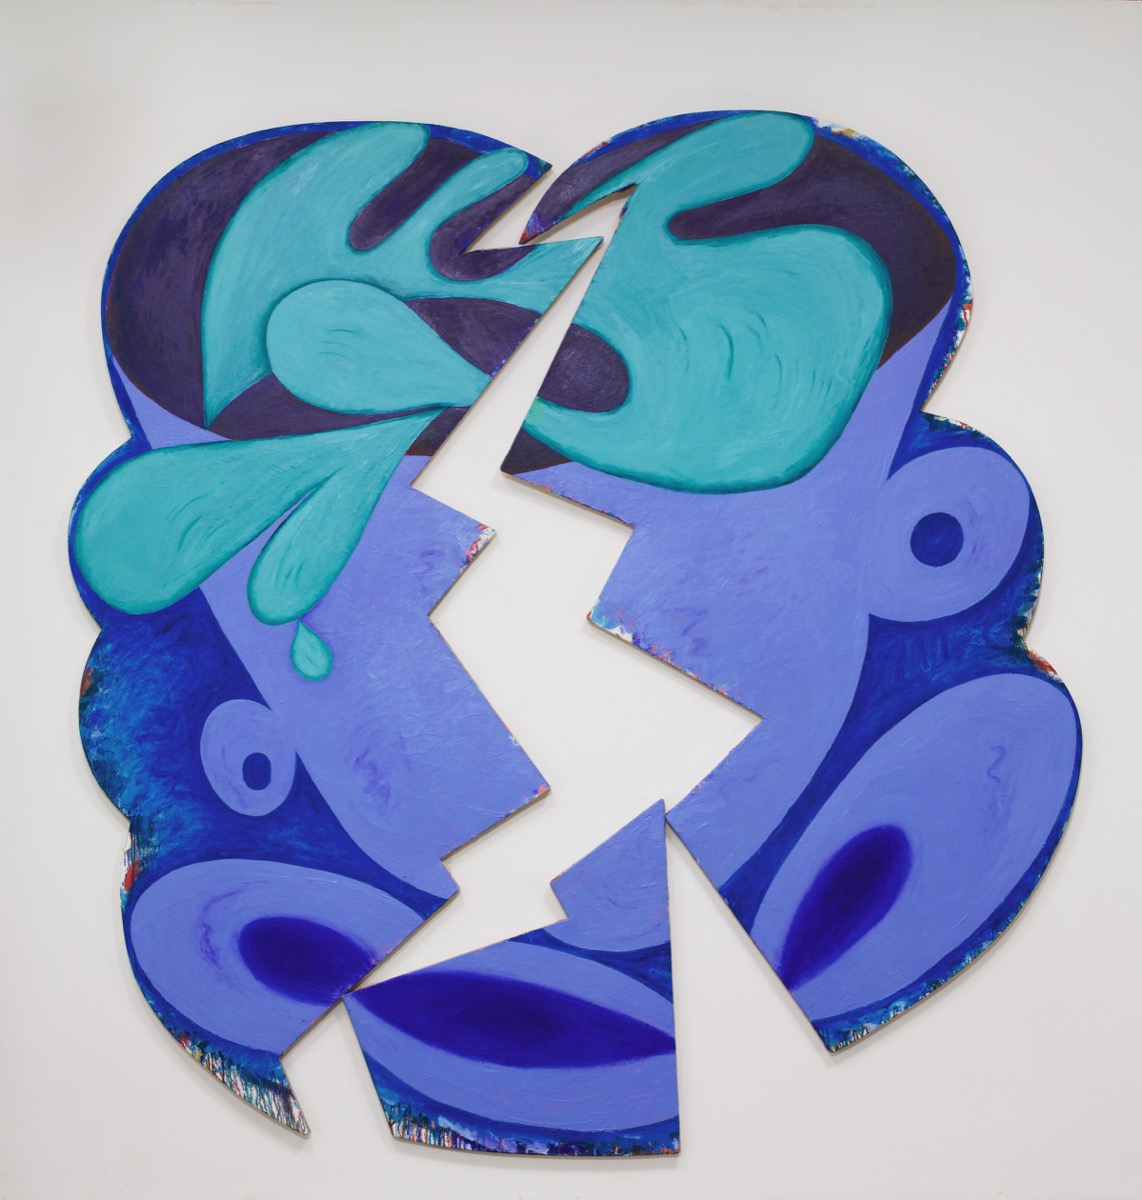 766681c96 Elizabeth Murray's Rule-Breaking Paintings Continue to Inspire Younger  Artists - Artsy